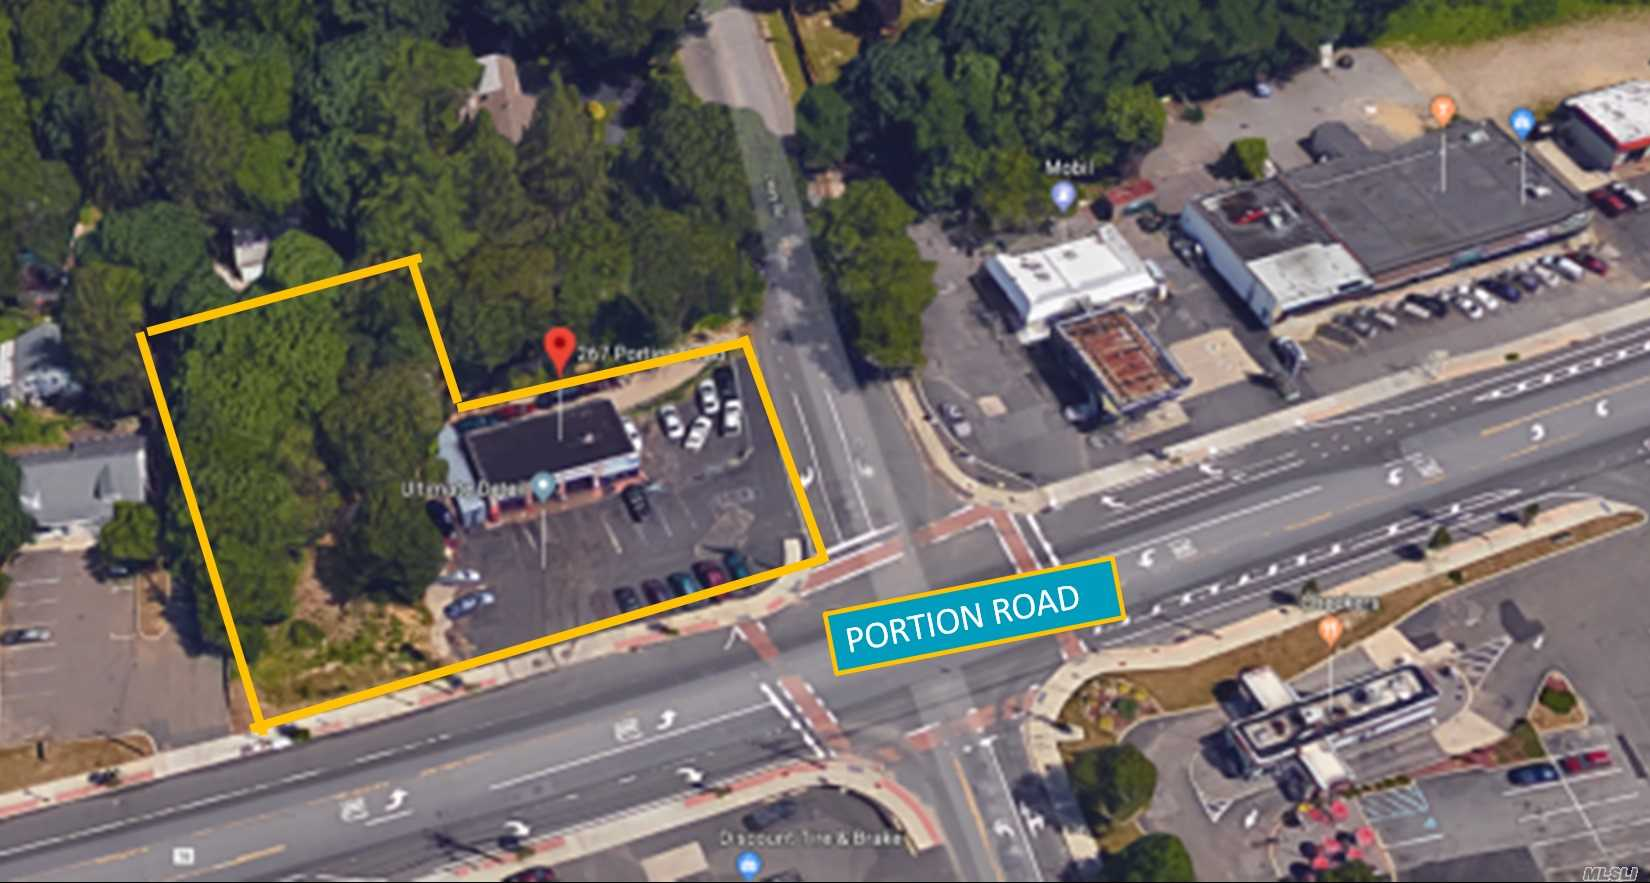 Prime Redevelopment Opportunity! Located At A High Visibility Corner On Heavily Traveled Portion Road In Lake Ronkonkoma. Two Lots With Just Over ? Acre Combined. The Perfect Location For Major Retailers. Traffic Light. 224 Feet Of Frontage On Portion! Surrounded By National Retailers. Close To All Major Roadways, Lirr And More!